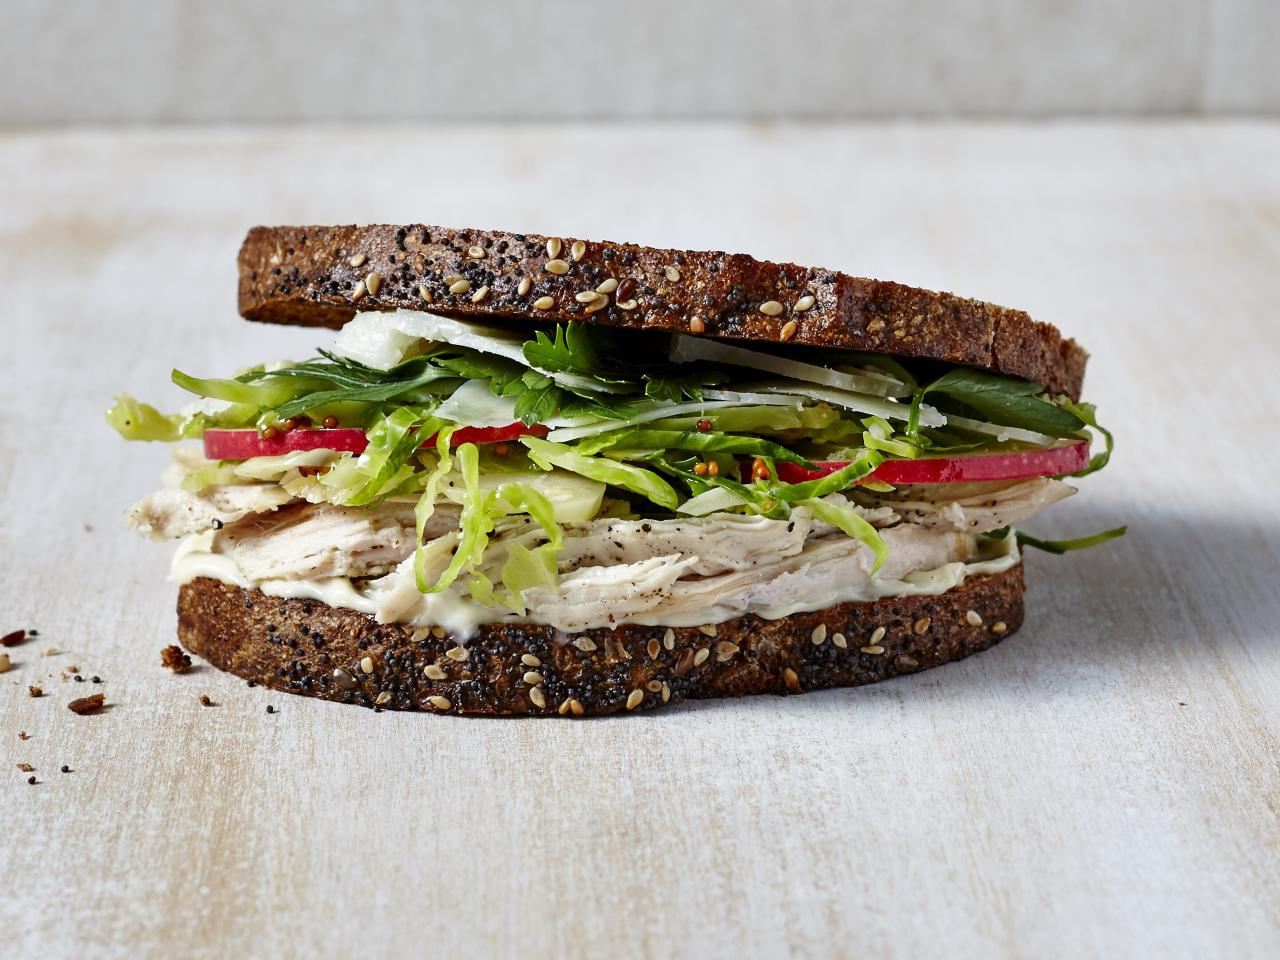 """<p>A quick, zippy slaw of Fuji apple, and fresh parsley transform a typical turkey sandwich—Brussels sprouts and a toasted, nutty whole-grain bread provide the perfect texture and crunch. Not a fan of turkey? Swap in rotisserie chicken instead.</p> <p> <a href=""""https://www.cookinglight.com/recipes/apple-shredded-turkey-brussels-sprouts-salad-sandwiches"""">View Recipe: Apples, Shredded Turkey, and Brussels Sprouts Salad Sandwiches</a></p>"""